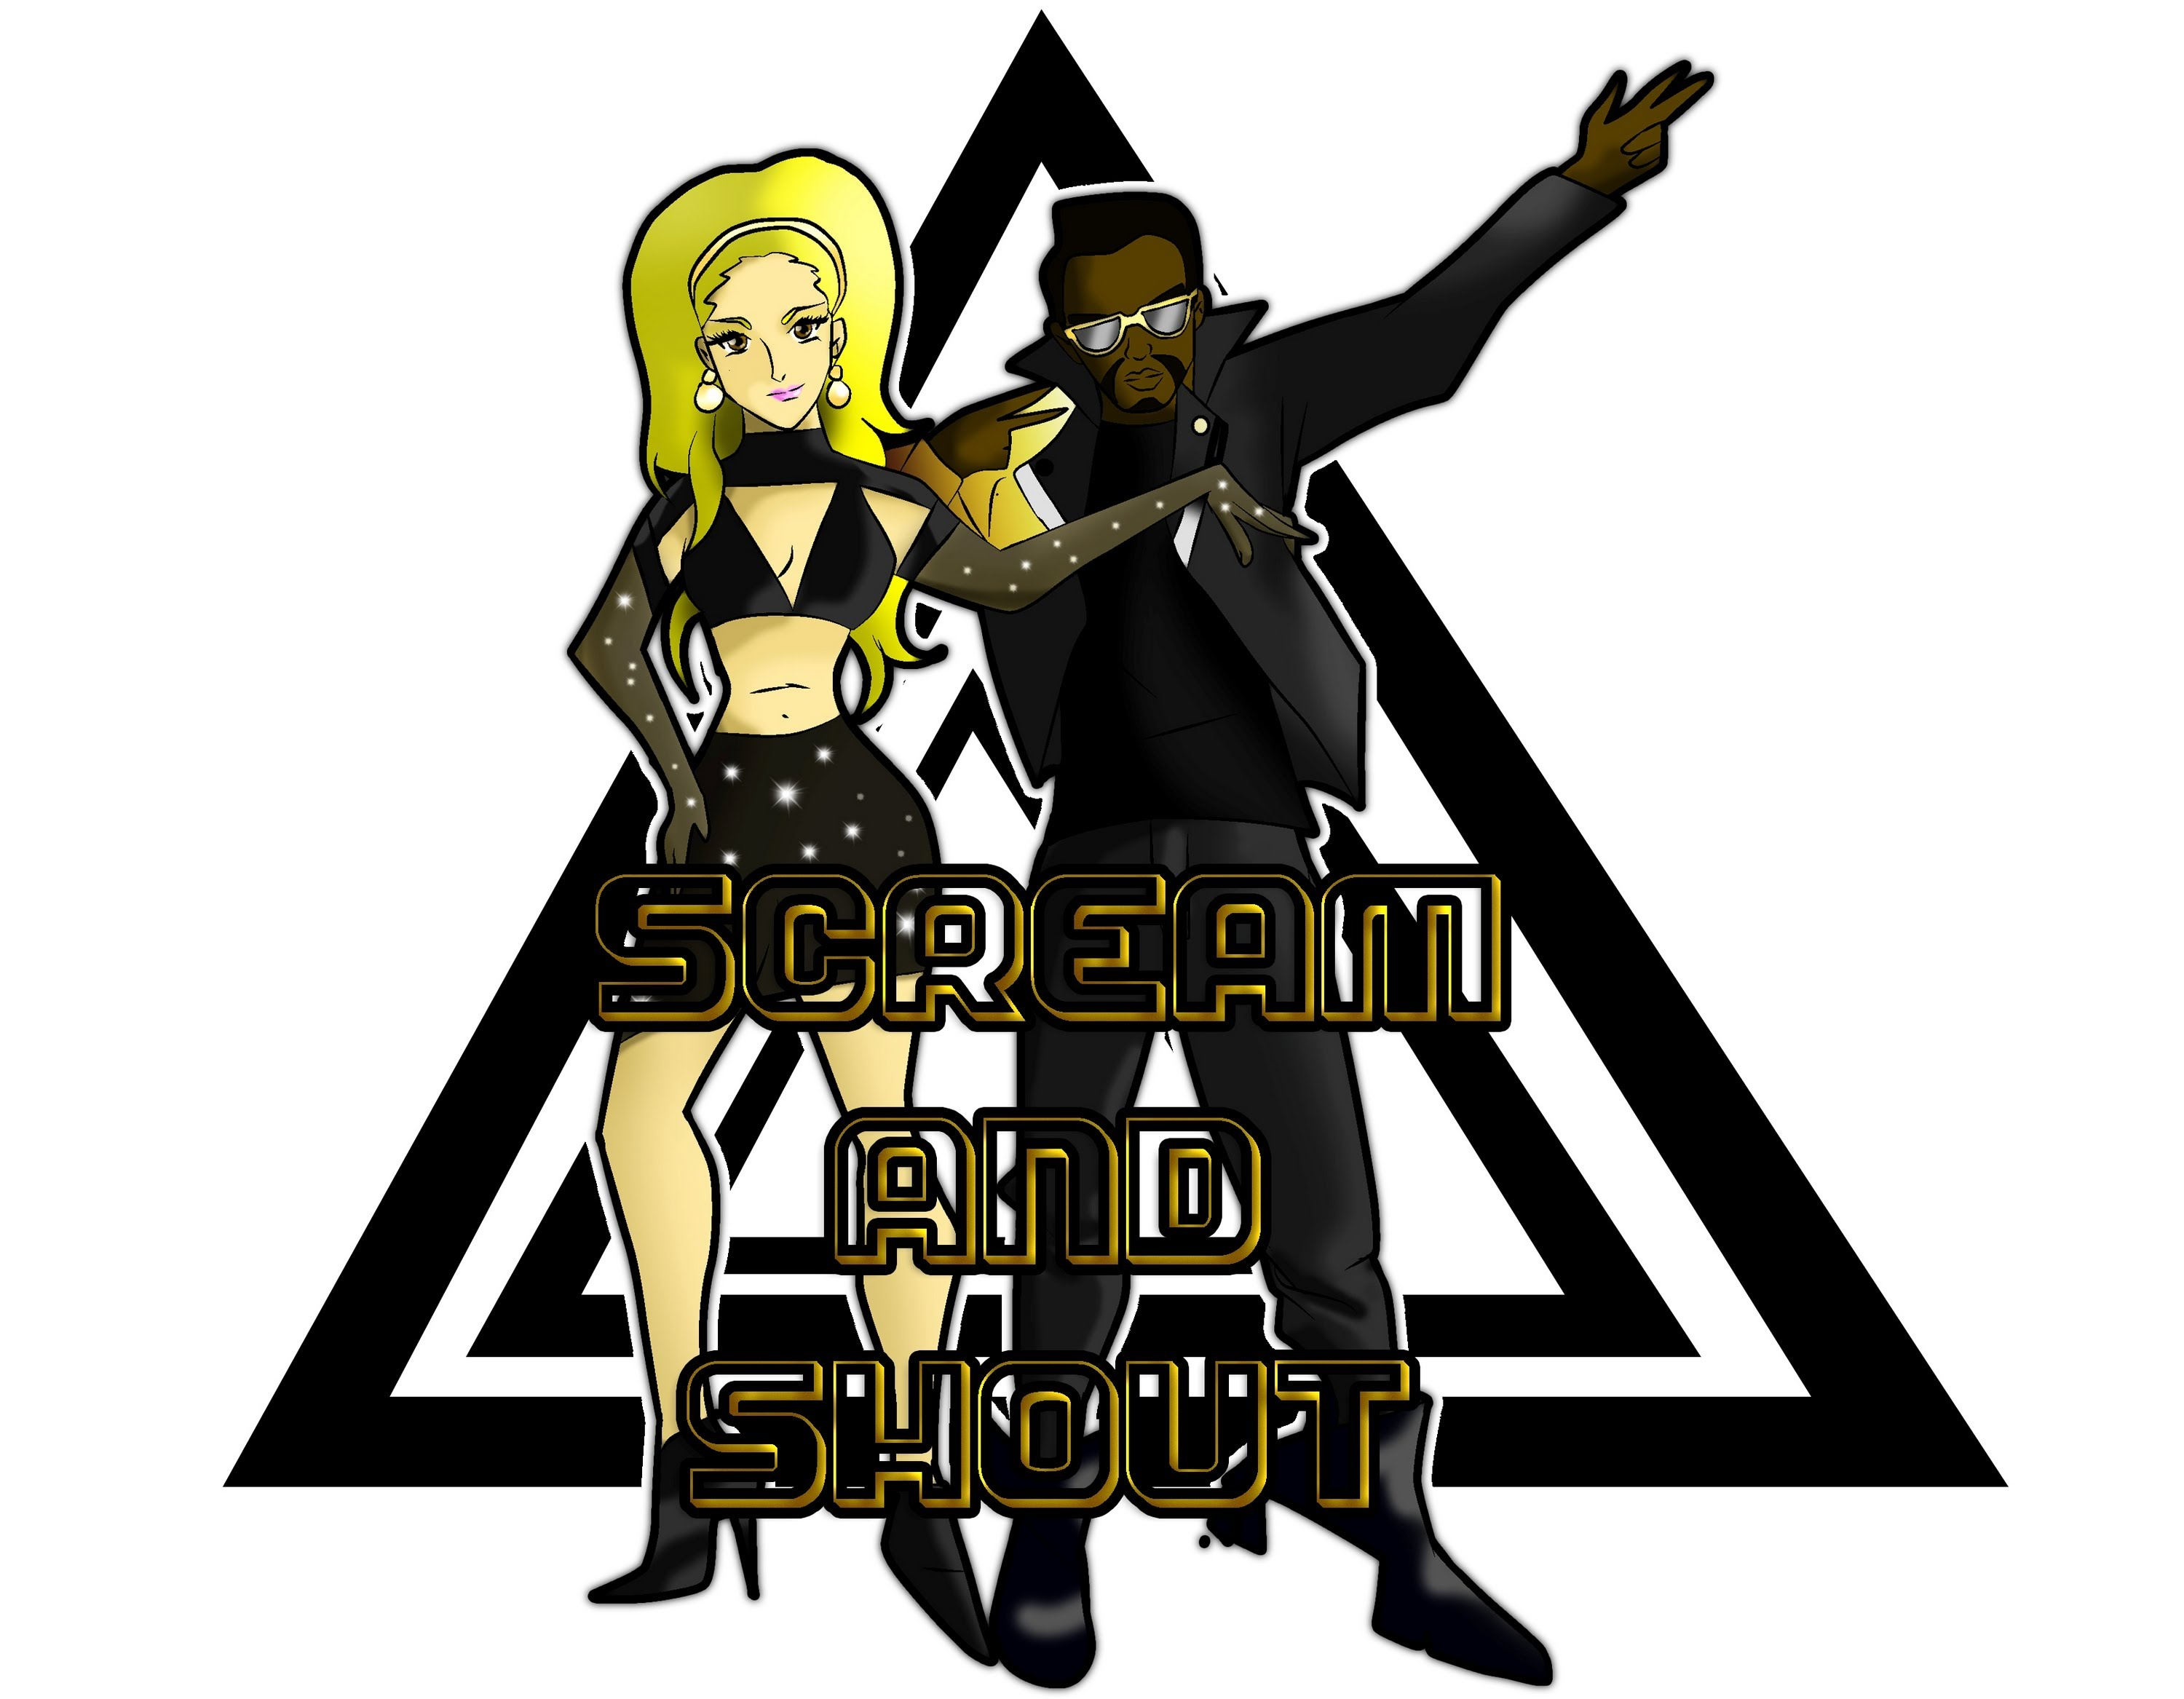 3000x2334 Speed Art Will.i.am Amp Britney Spears (Scream And Shout)